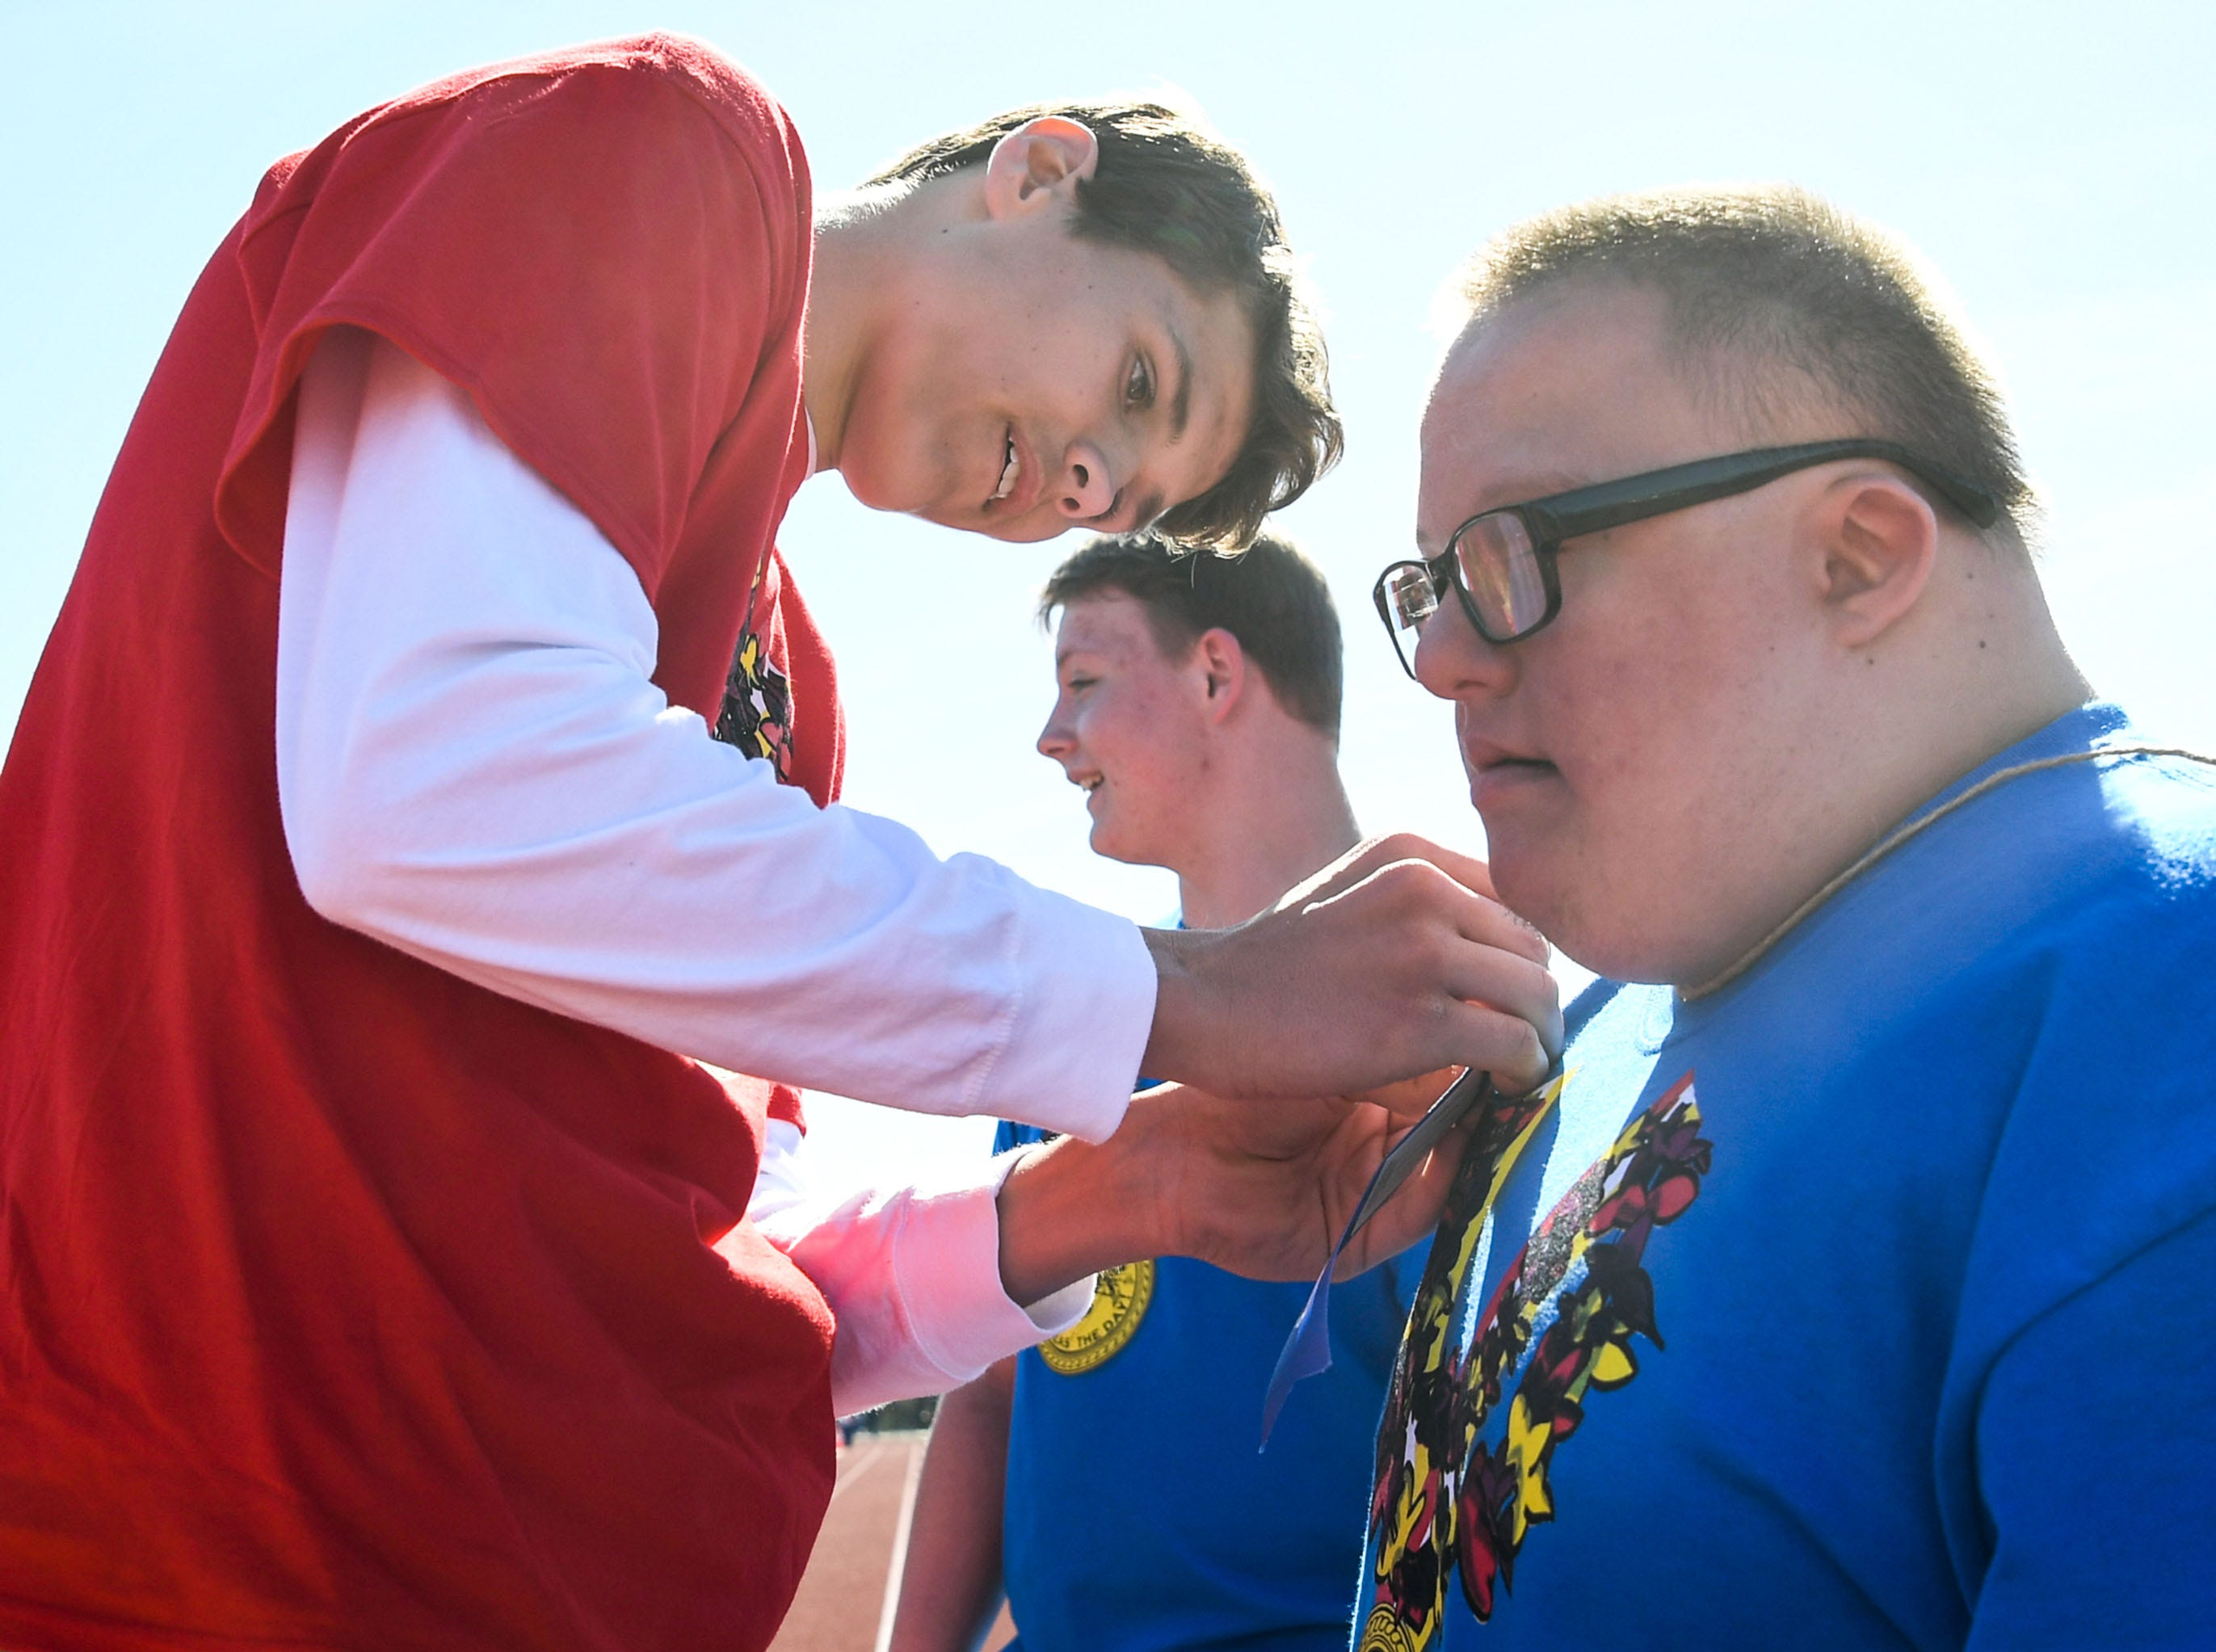 Volunteer Dodson Wood, left, a junior at Belton-Honea Path High School places a blue ribbon on athlete Cody Darby after the 100 yard walk during the Special Olympics South Carolina Area 14 Spring Games at Marlee Gambrell field at Belton-Honea Path High School Wednesday.